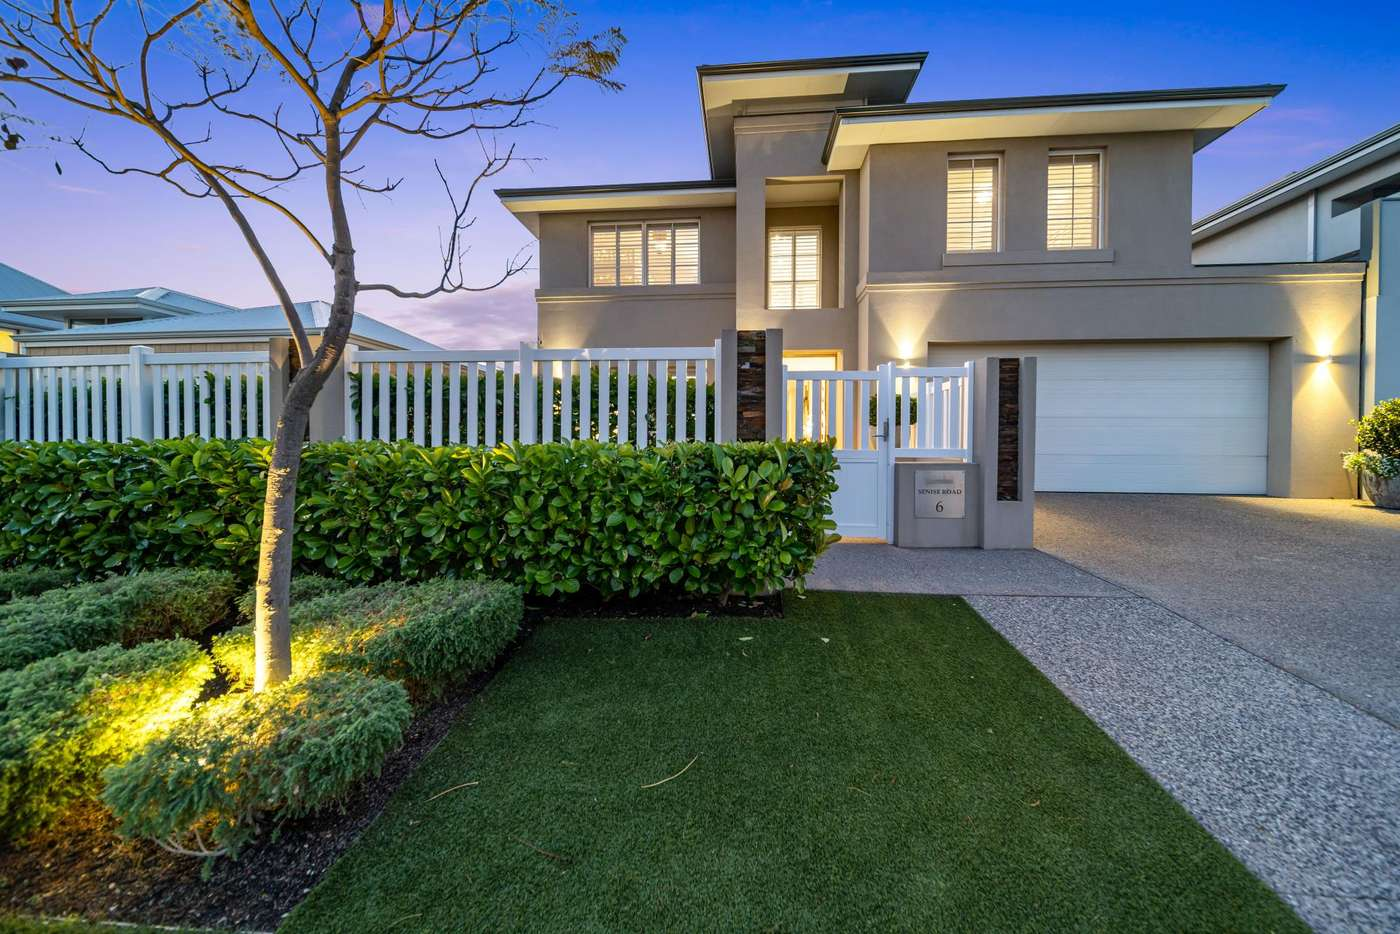 Main view of Homely house listing, 6 Senise Road, Stirling WA 6021